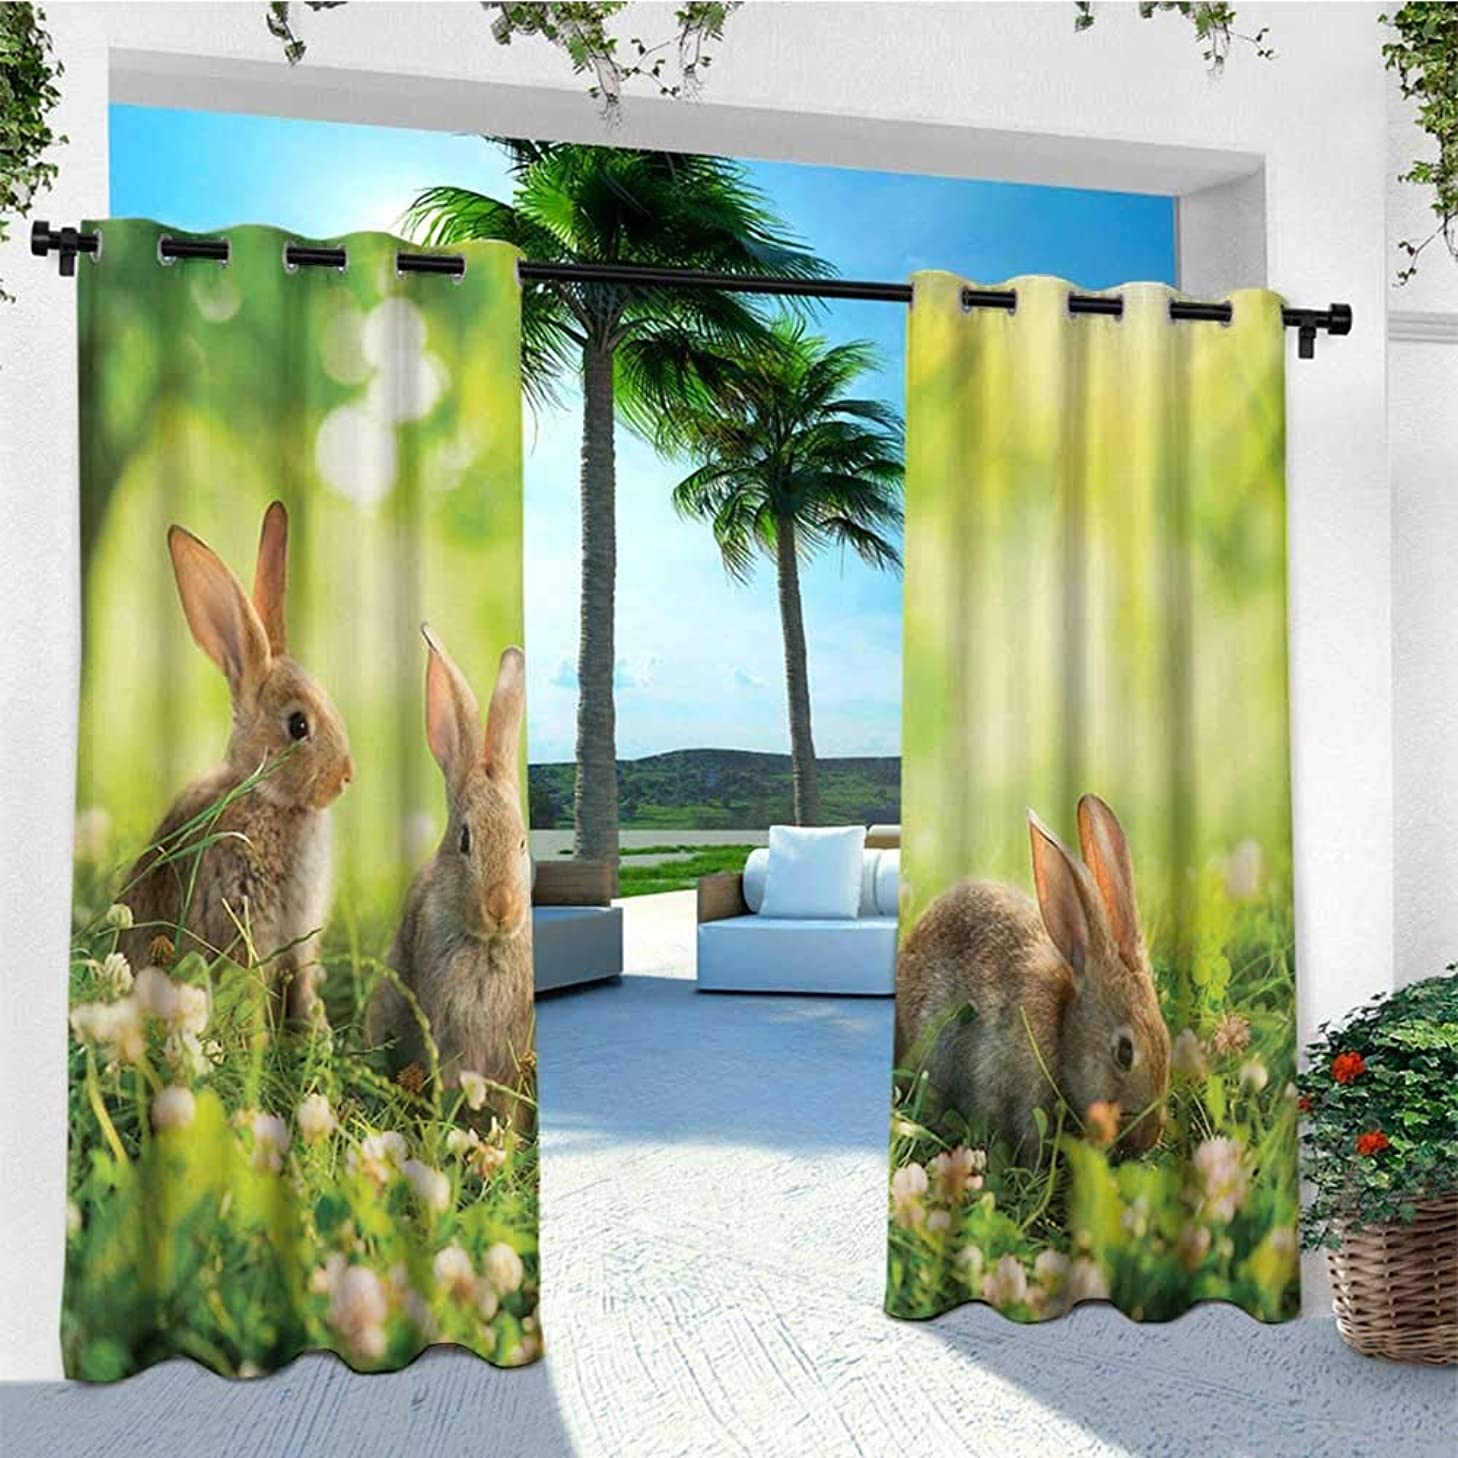 leinuoyi Animal, Outdoor Curtain Extra Wide, Funny Fluffy Rabbits Bunny Family on Daisies Grass Easter Meadow Fresh Image, Outdoor Patio Curtains W120 x L108 Inch Green and Tan